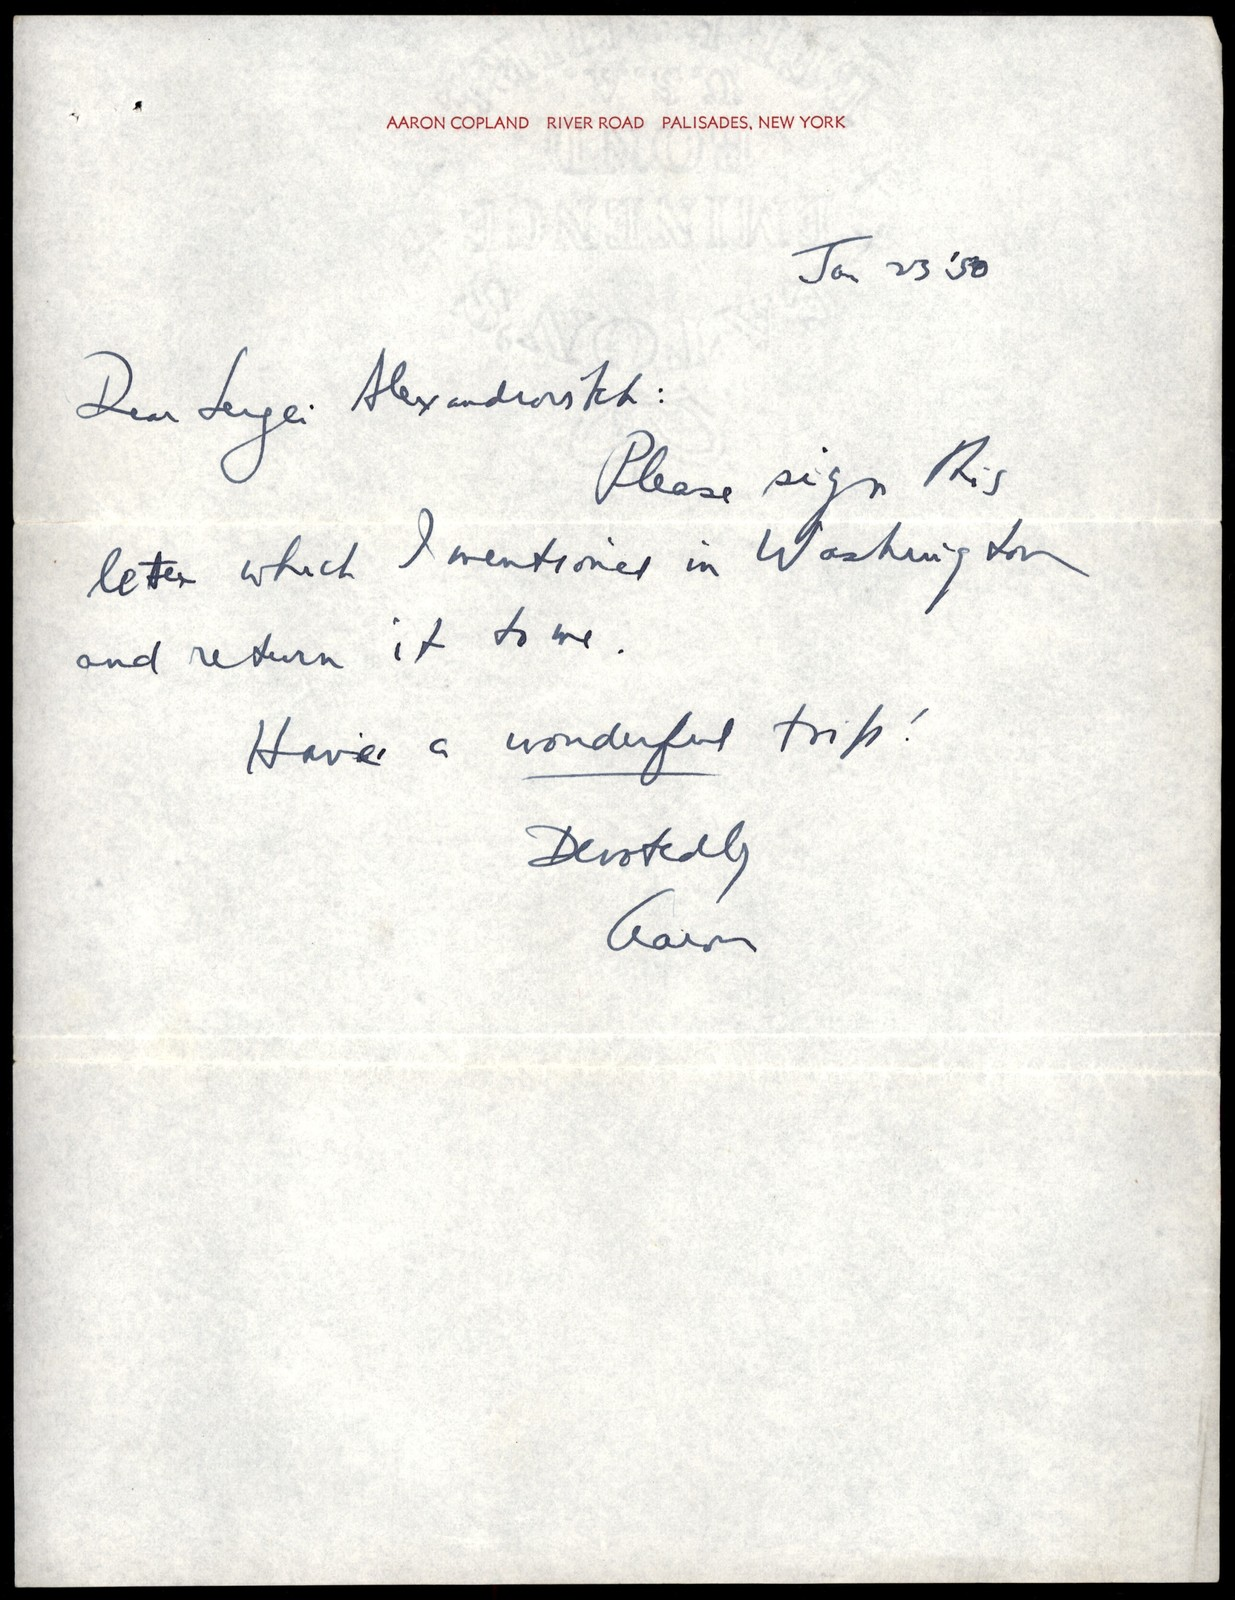 Letter from Aaron Copland to Serge Koussevitzky, January 23, 1950.